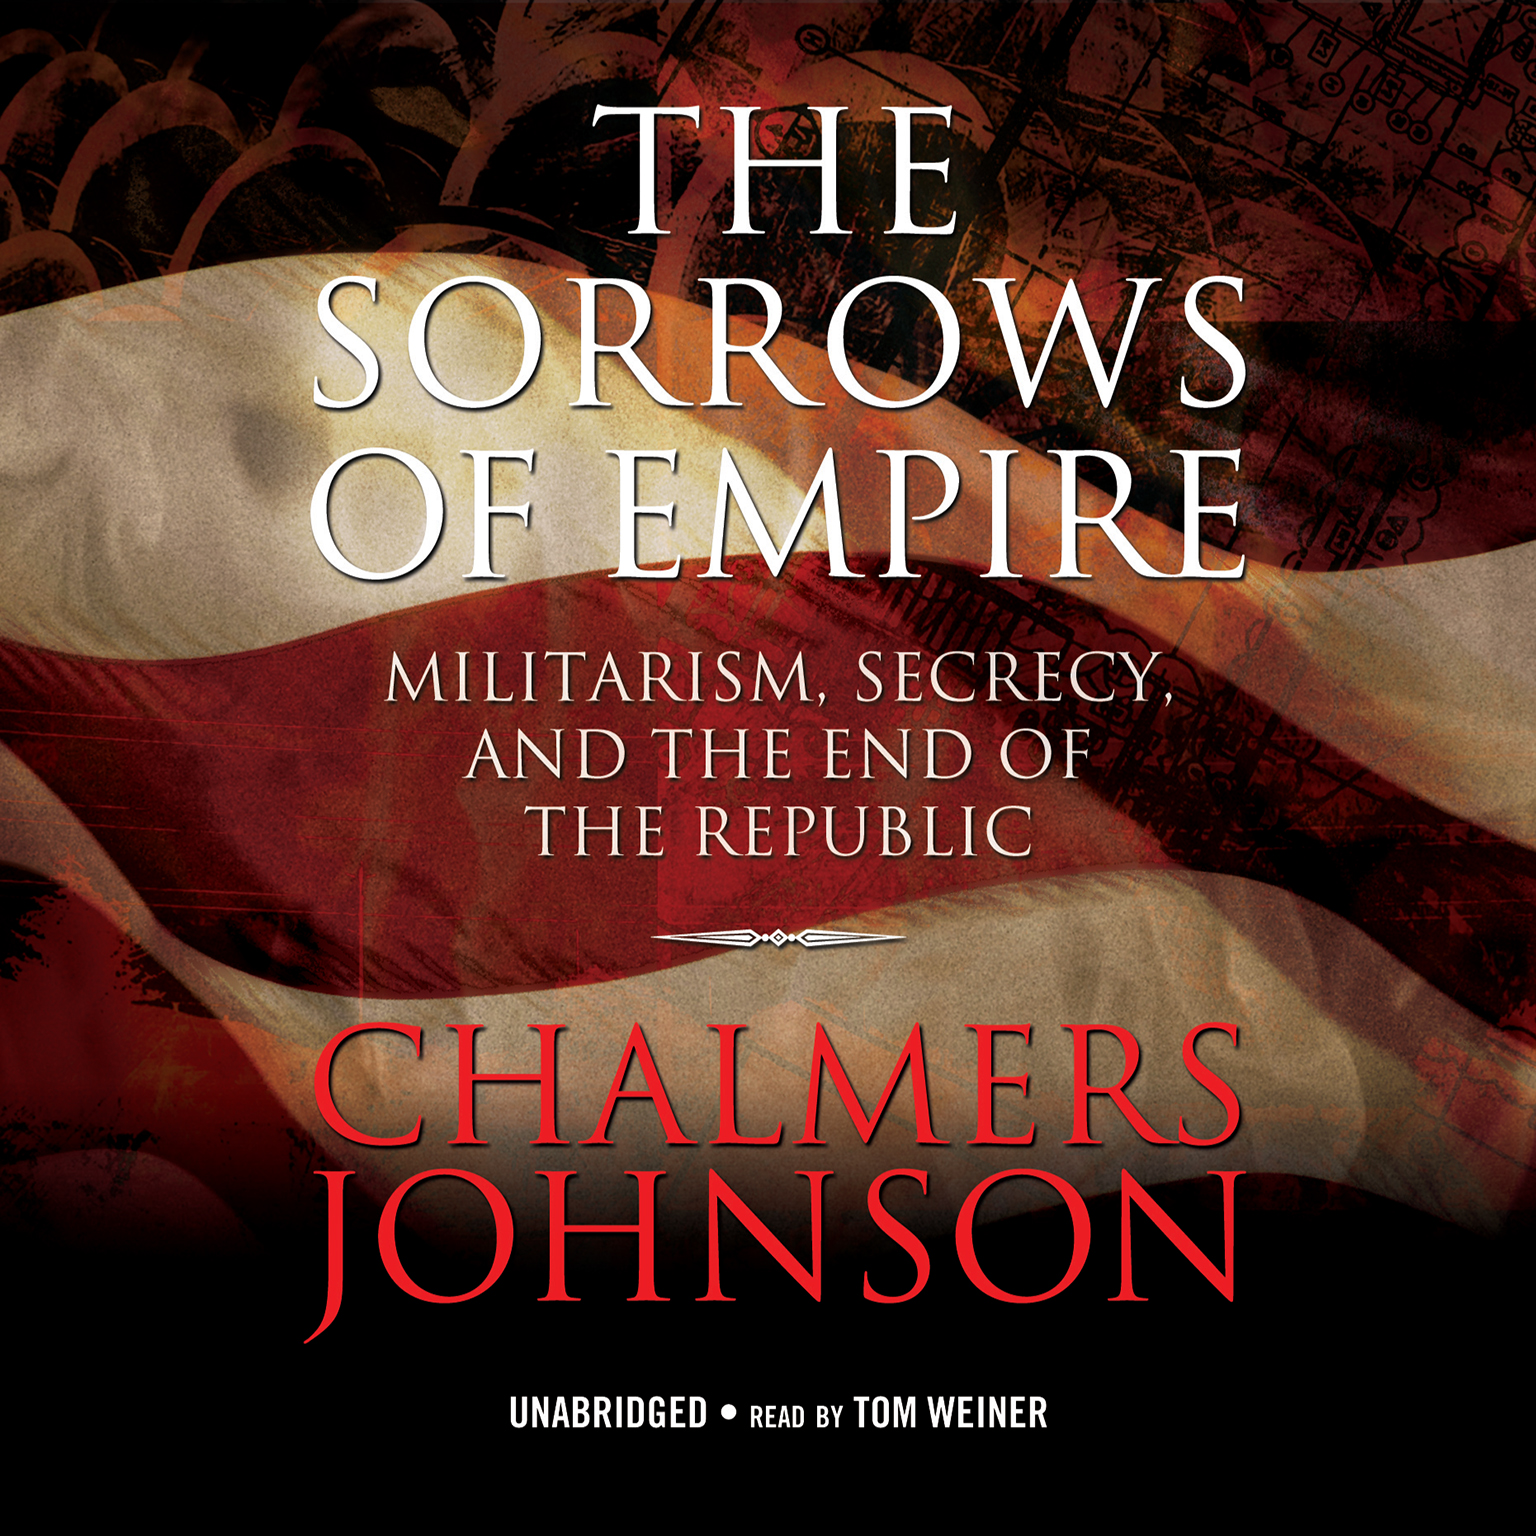 Printable The Sorrows of Empire: Militarism, Secrecy, and the End of the Republic Audiobook Cover Art